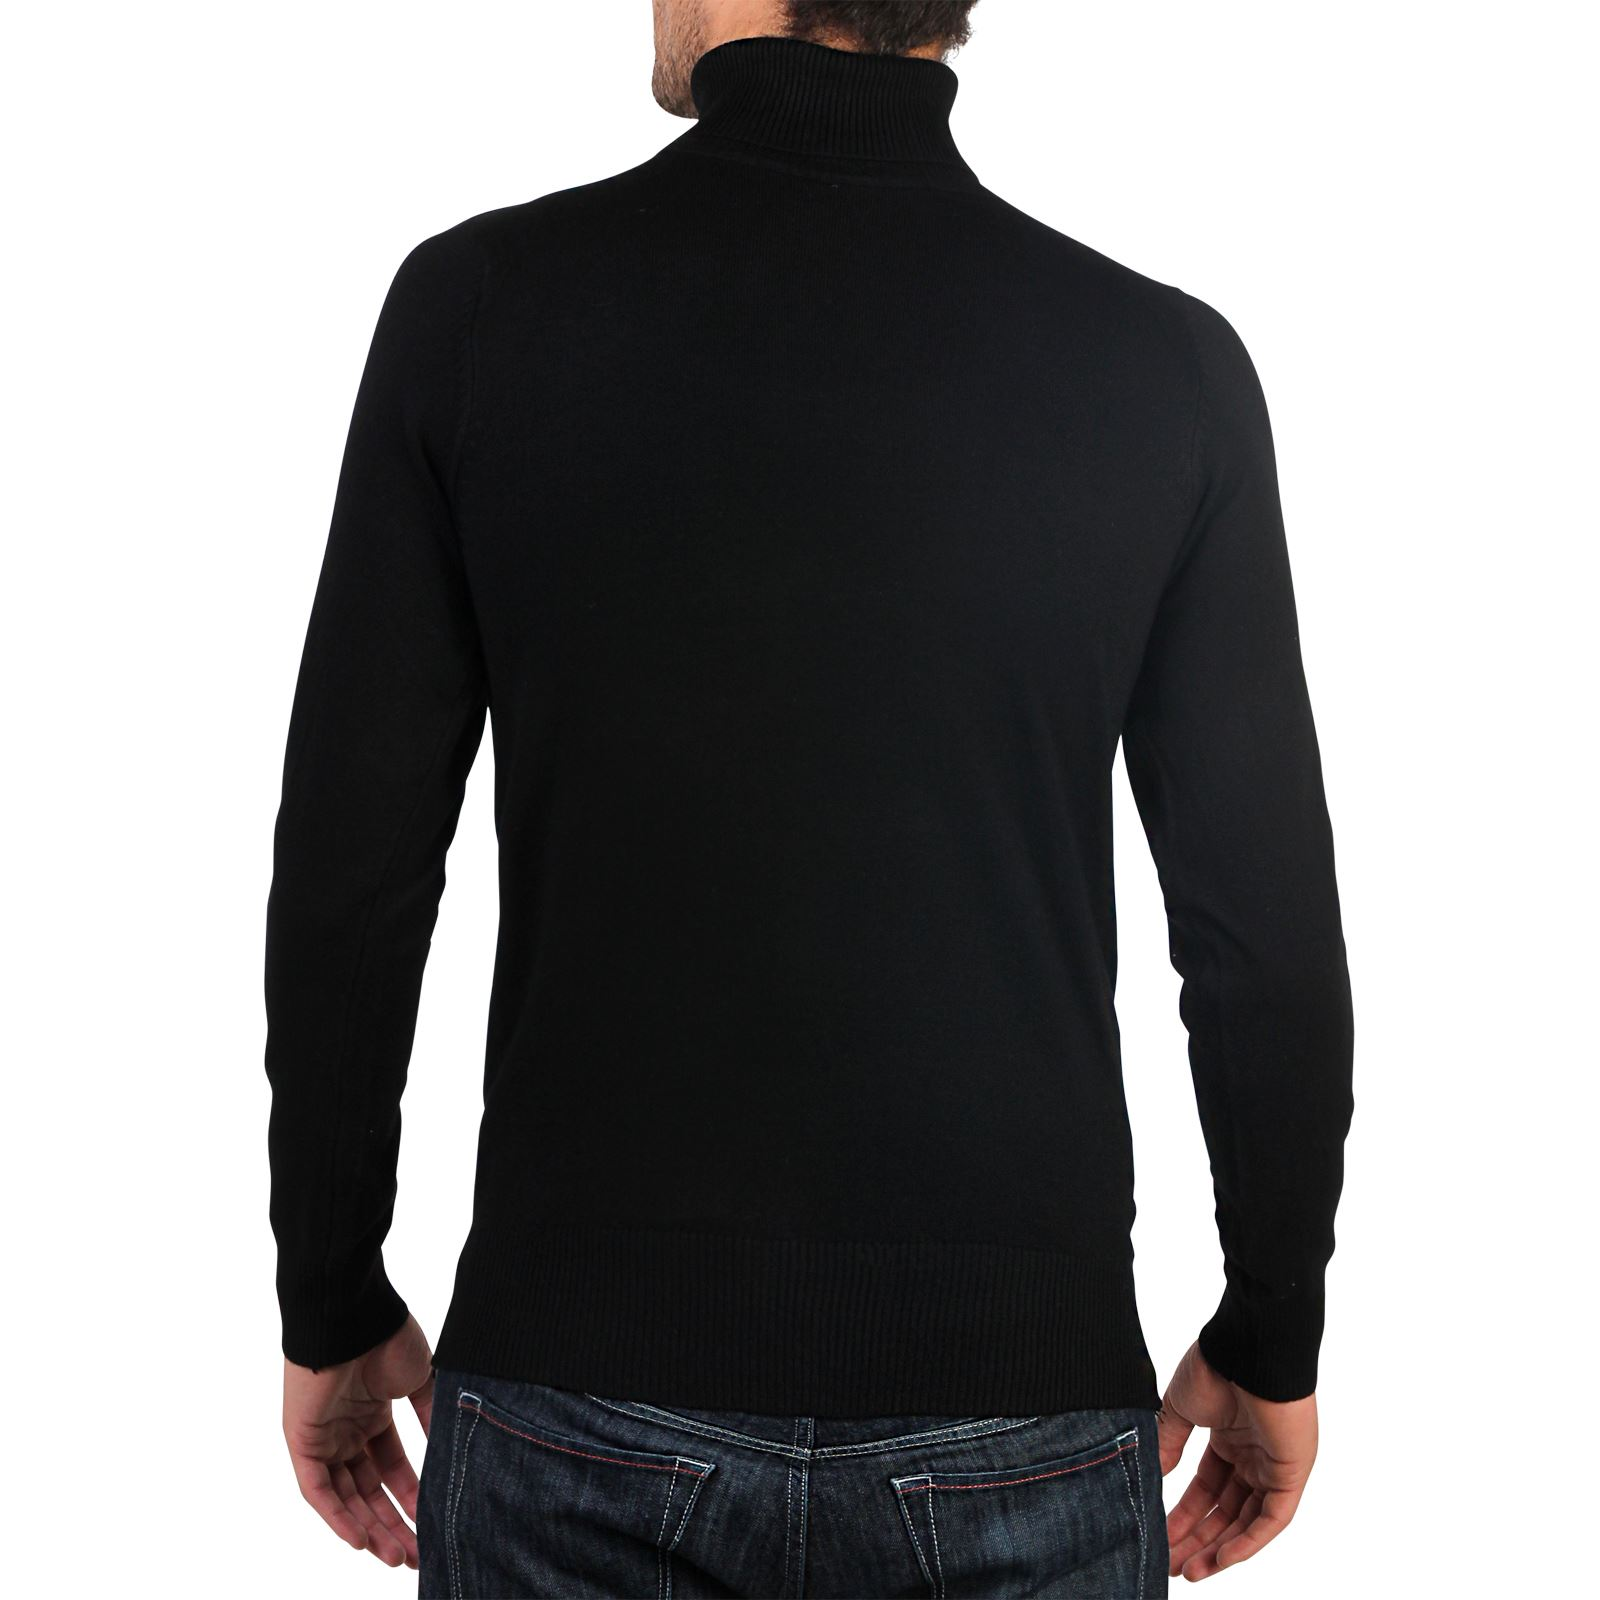 Mens-Turtle-Neck-Roll-Jumper-Sweater-Cotton-Knitwear-Winter-Pullover-Polo-Top thumbnail 3